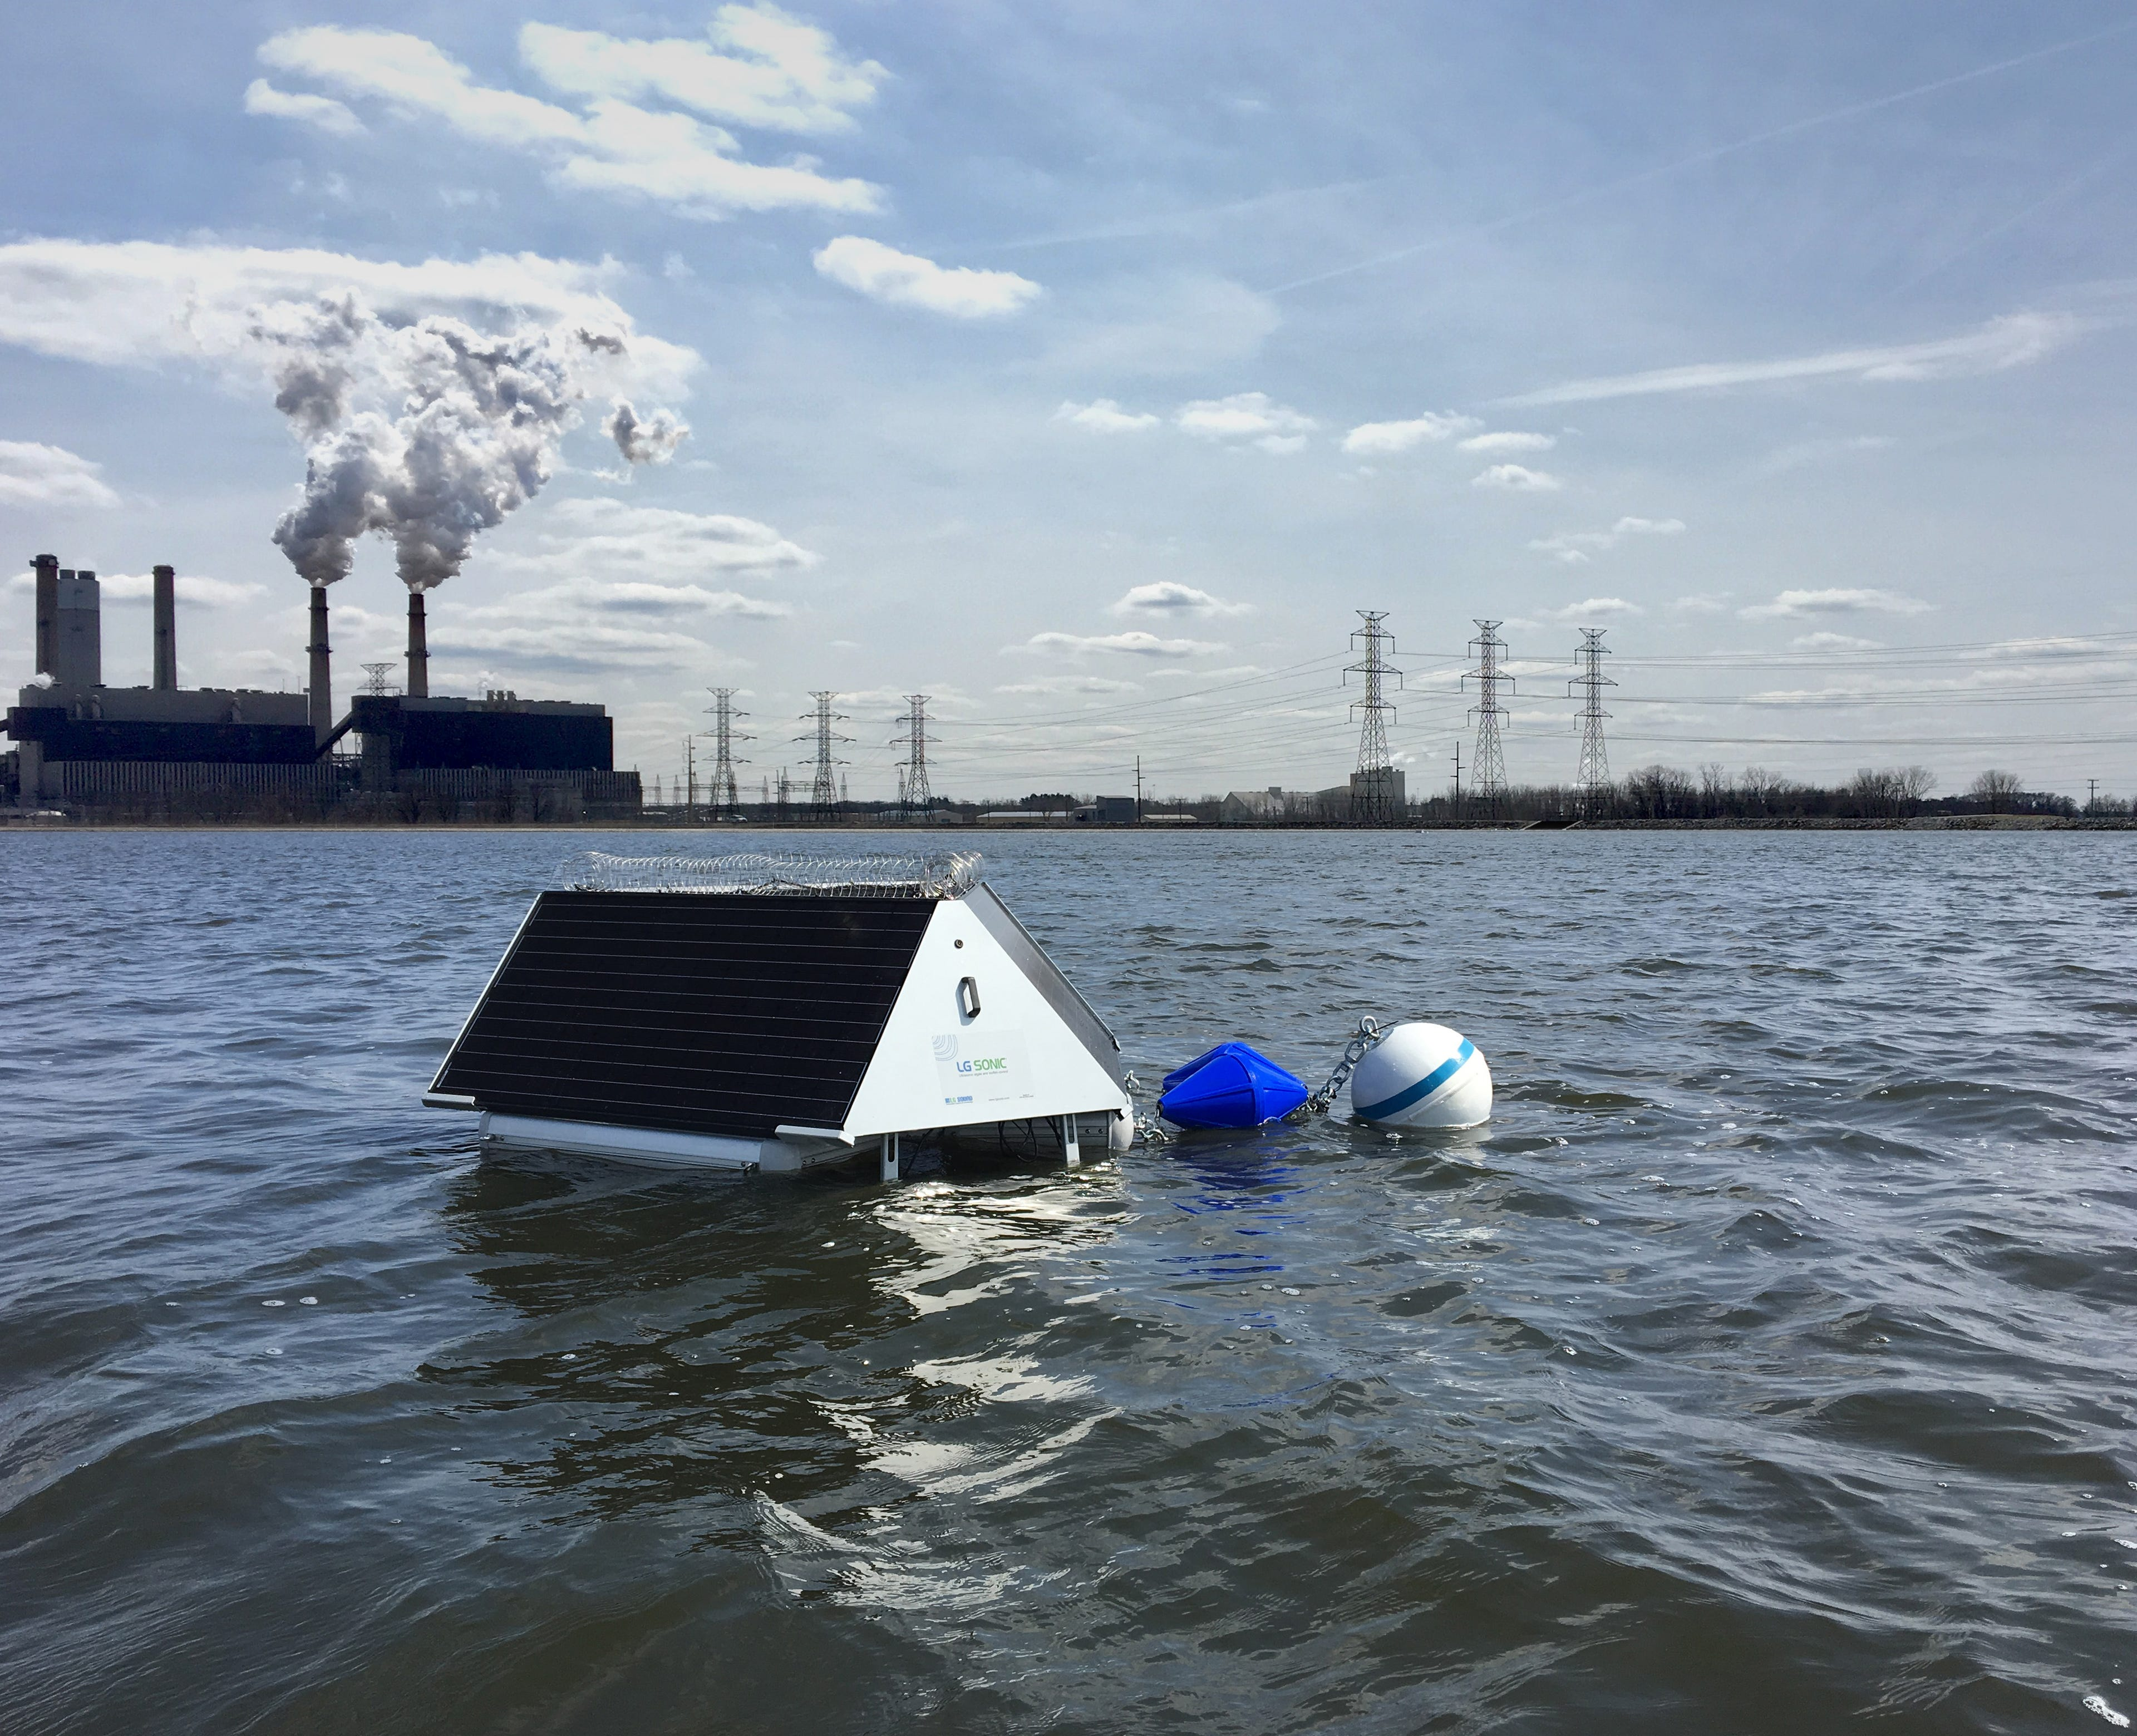 The Everglades Wetland Research Park will deploy the MPC buoy system in Naples. The solar-powered buoys will be tethered in nine lakes throughout the Treviso Bay Naples community.